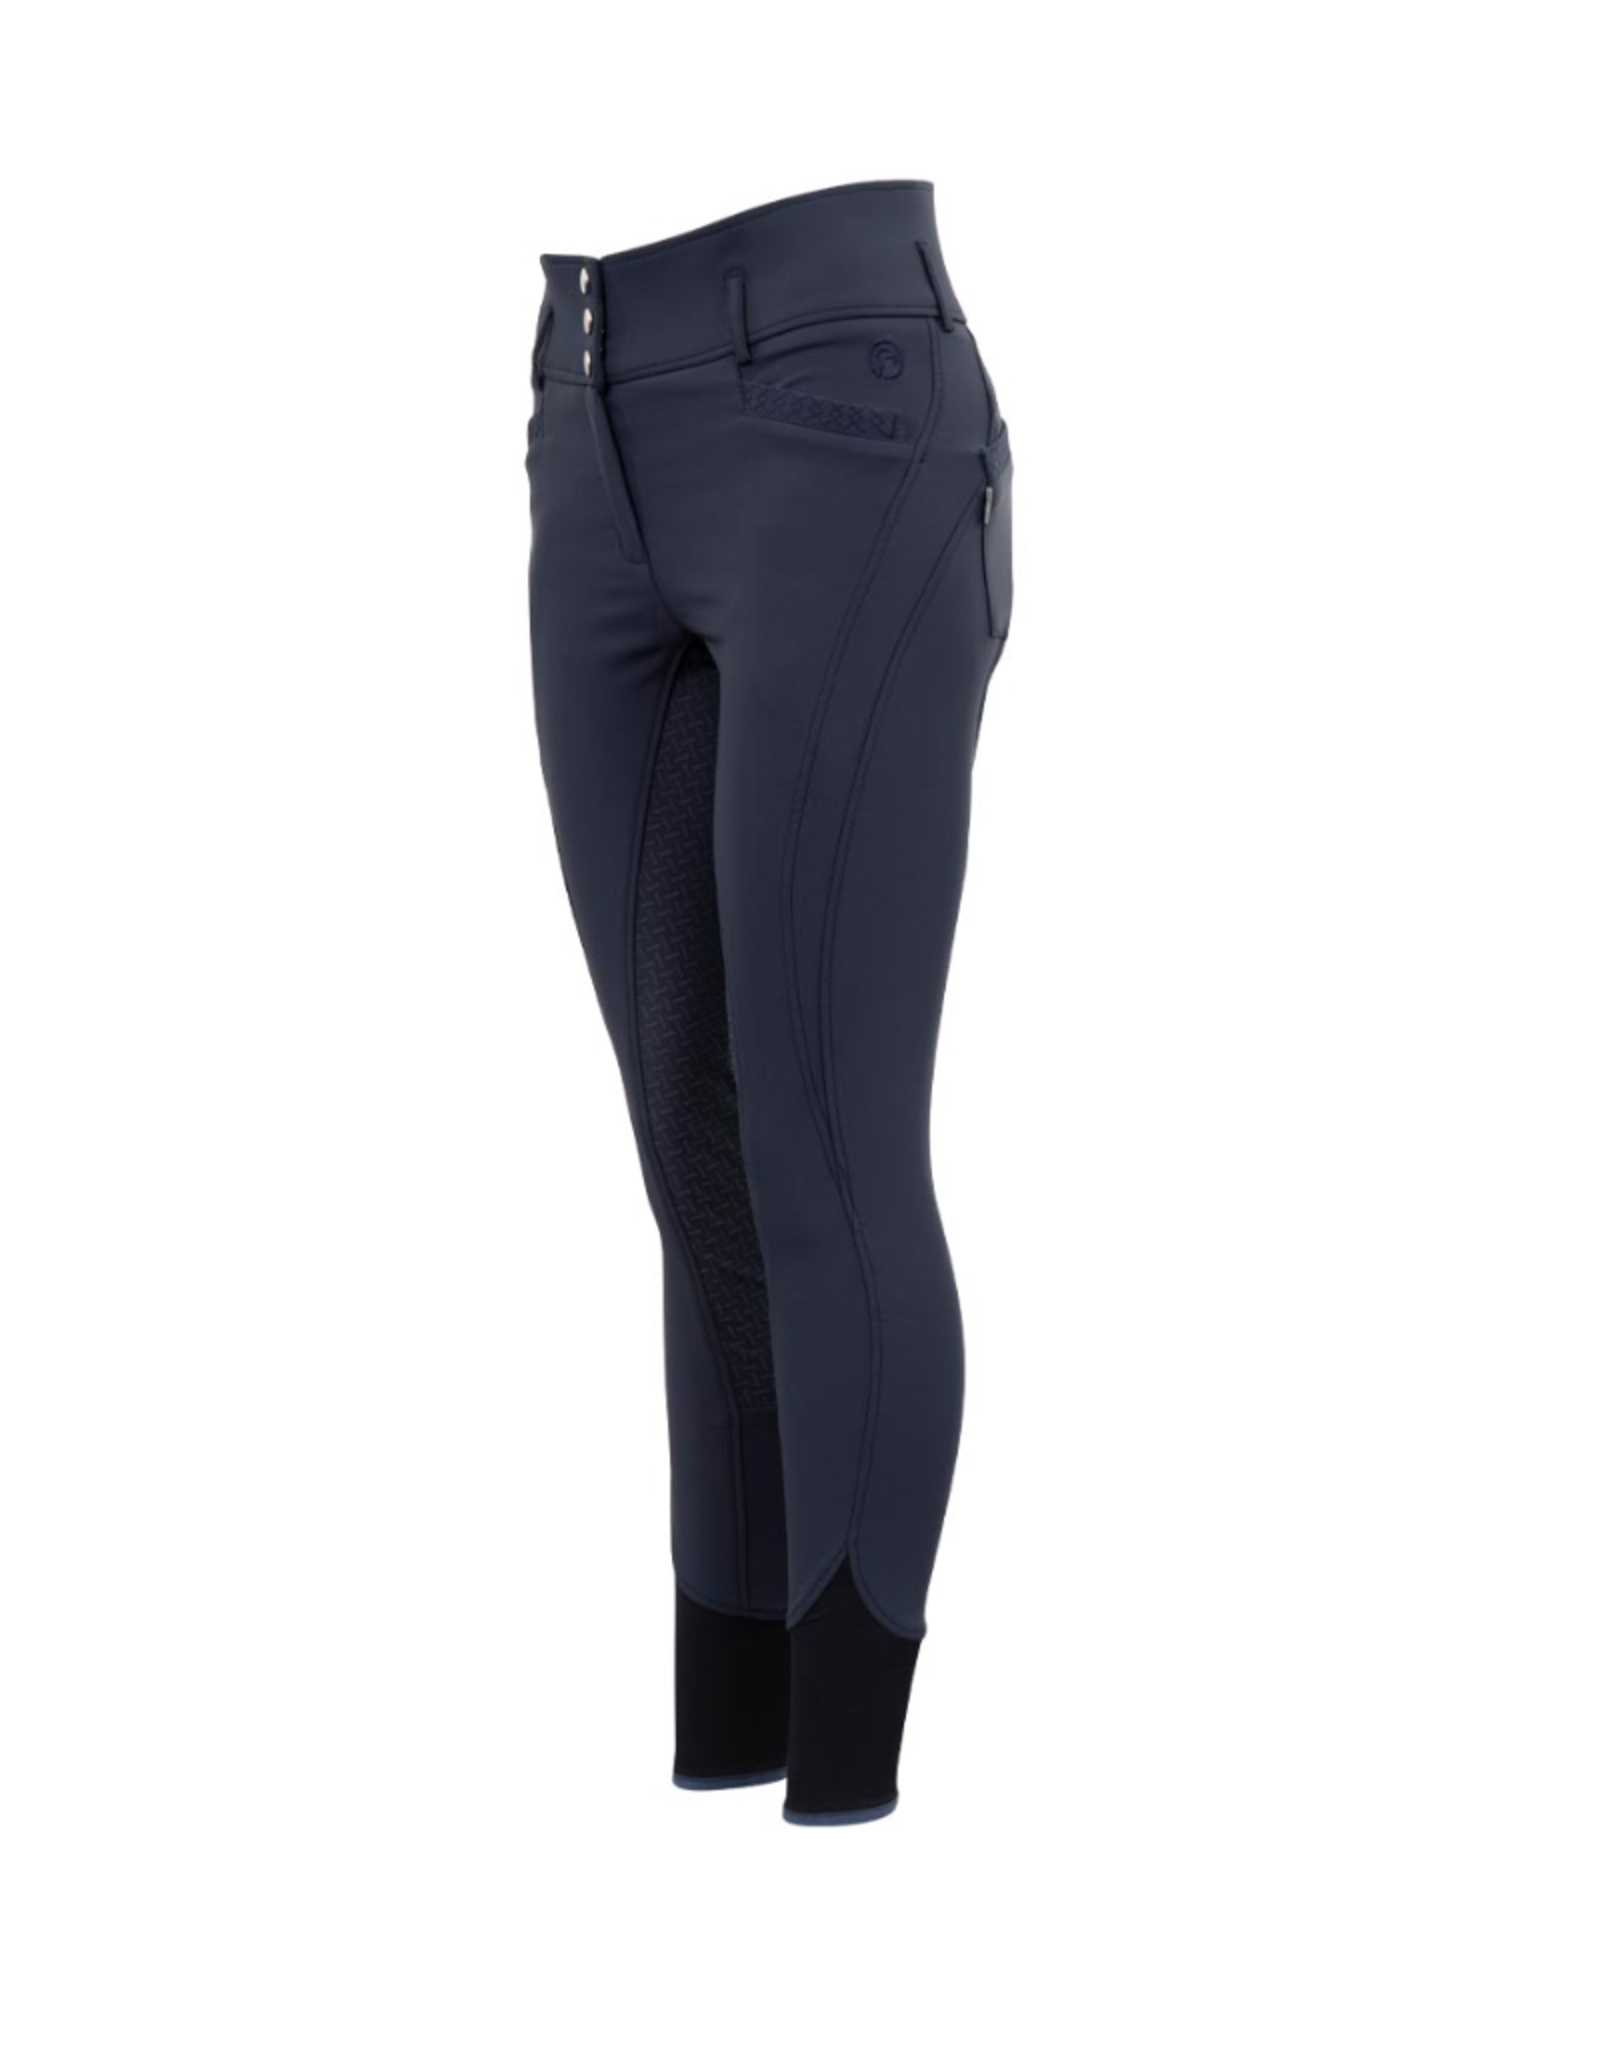 Anky Anky Significant  Full Grip Broek Dames